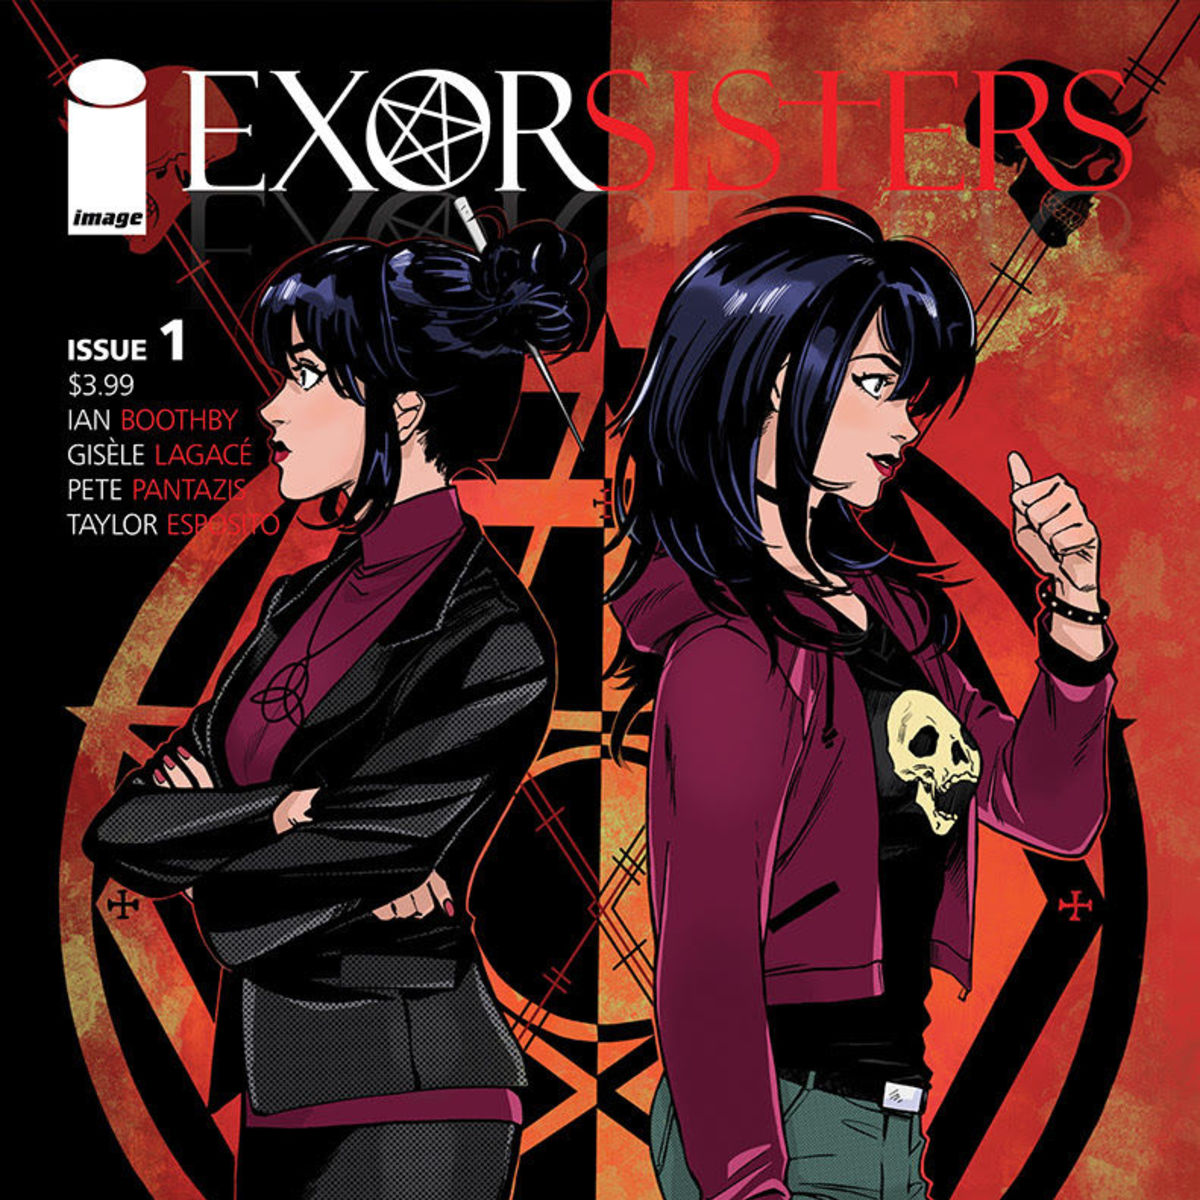 Exorsisters #1 cover